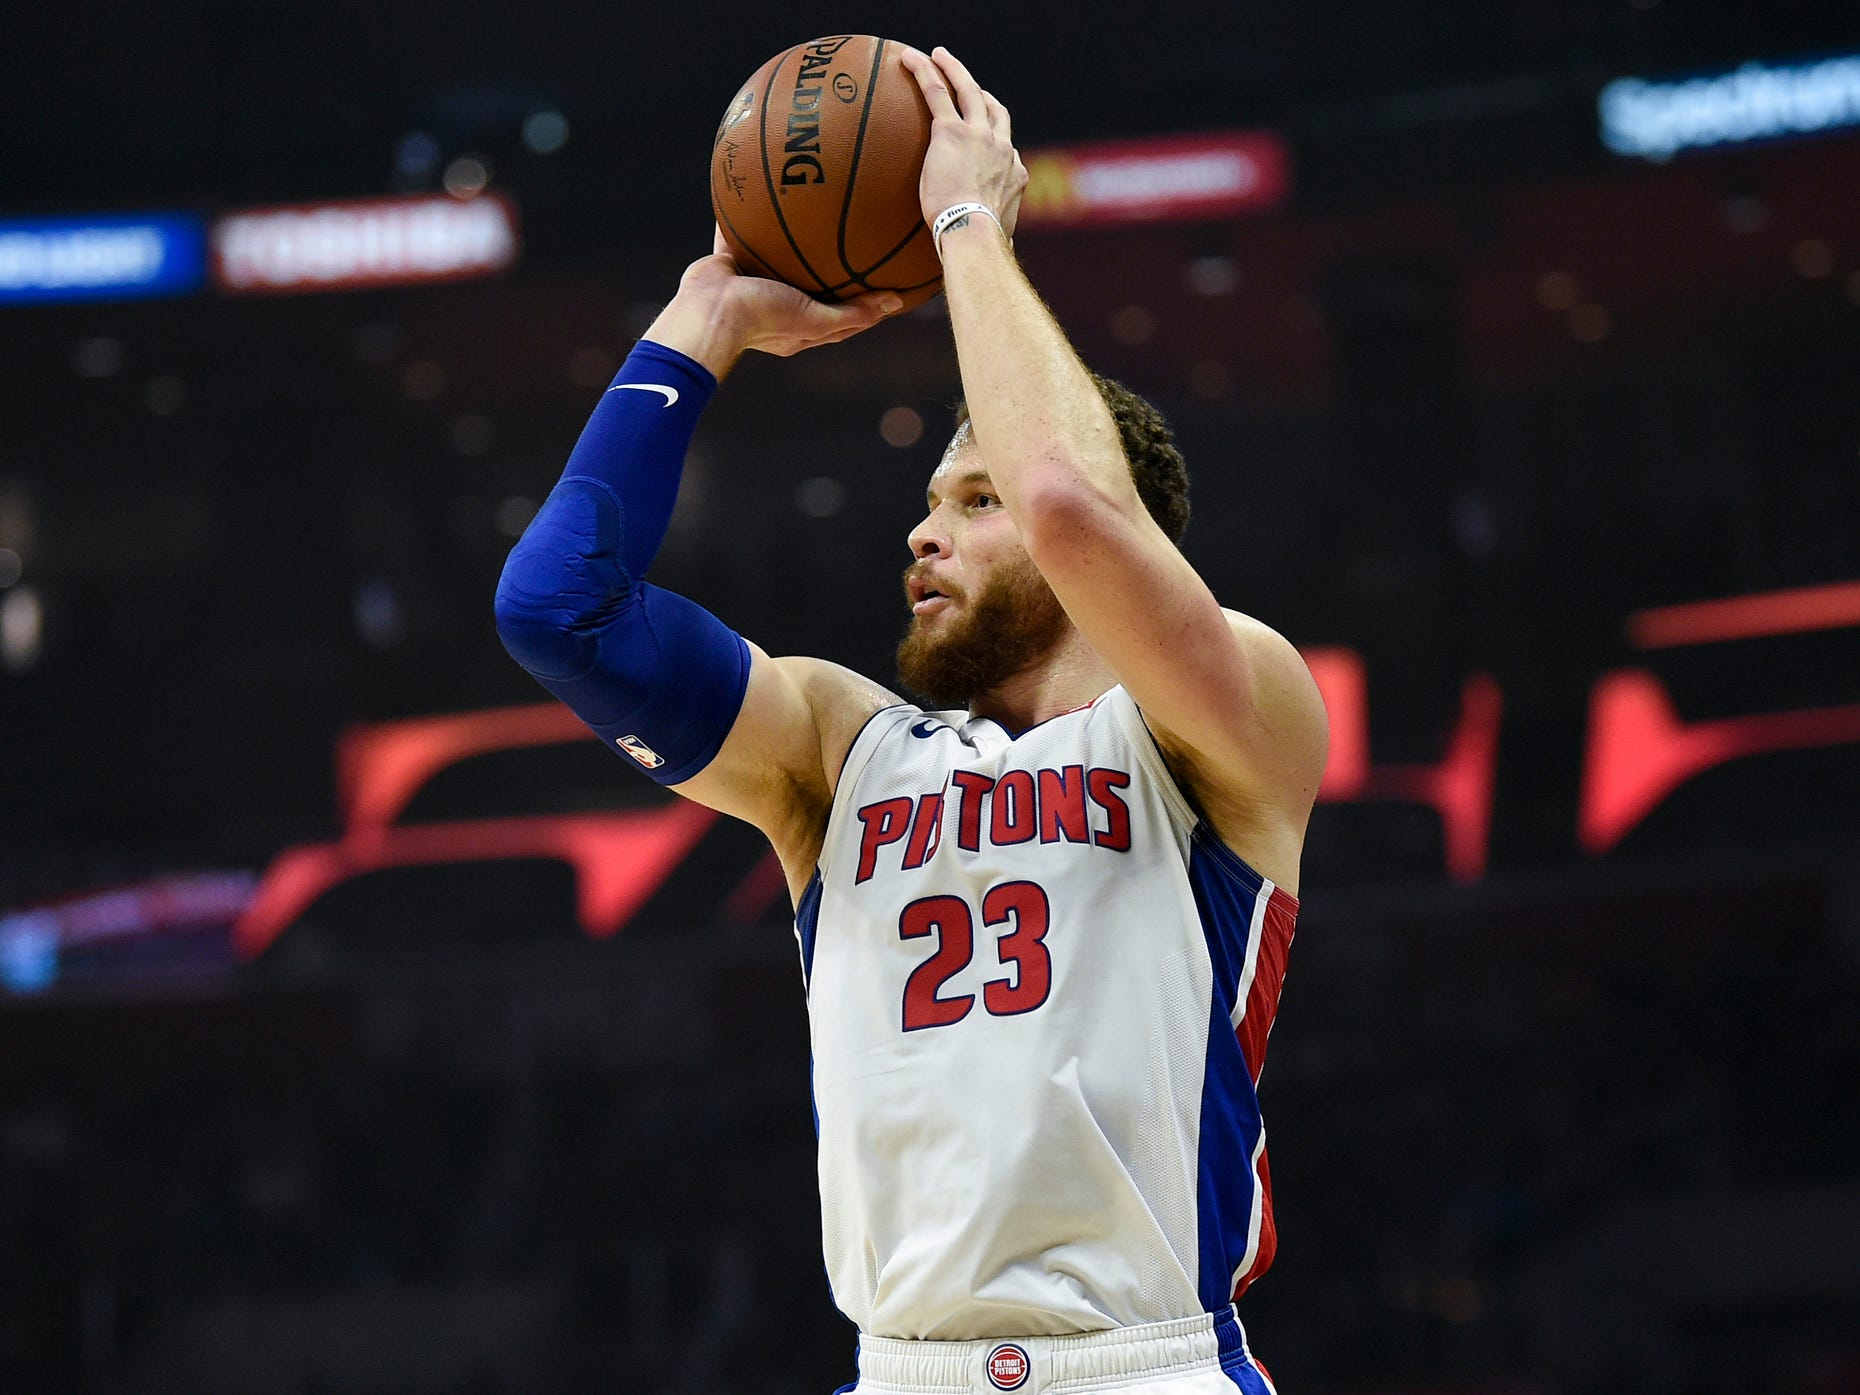 Pistons forward Blake Griffin attempts a shot against the Clippers during the first quarter on Saturday, Jan. 12, 2019, in Los Angeles.